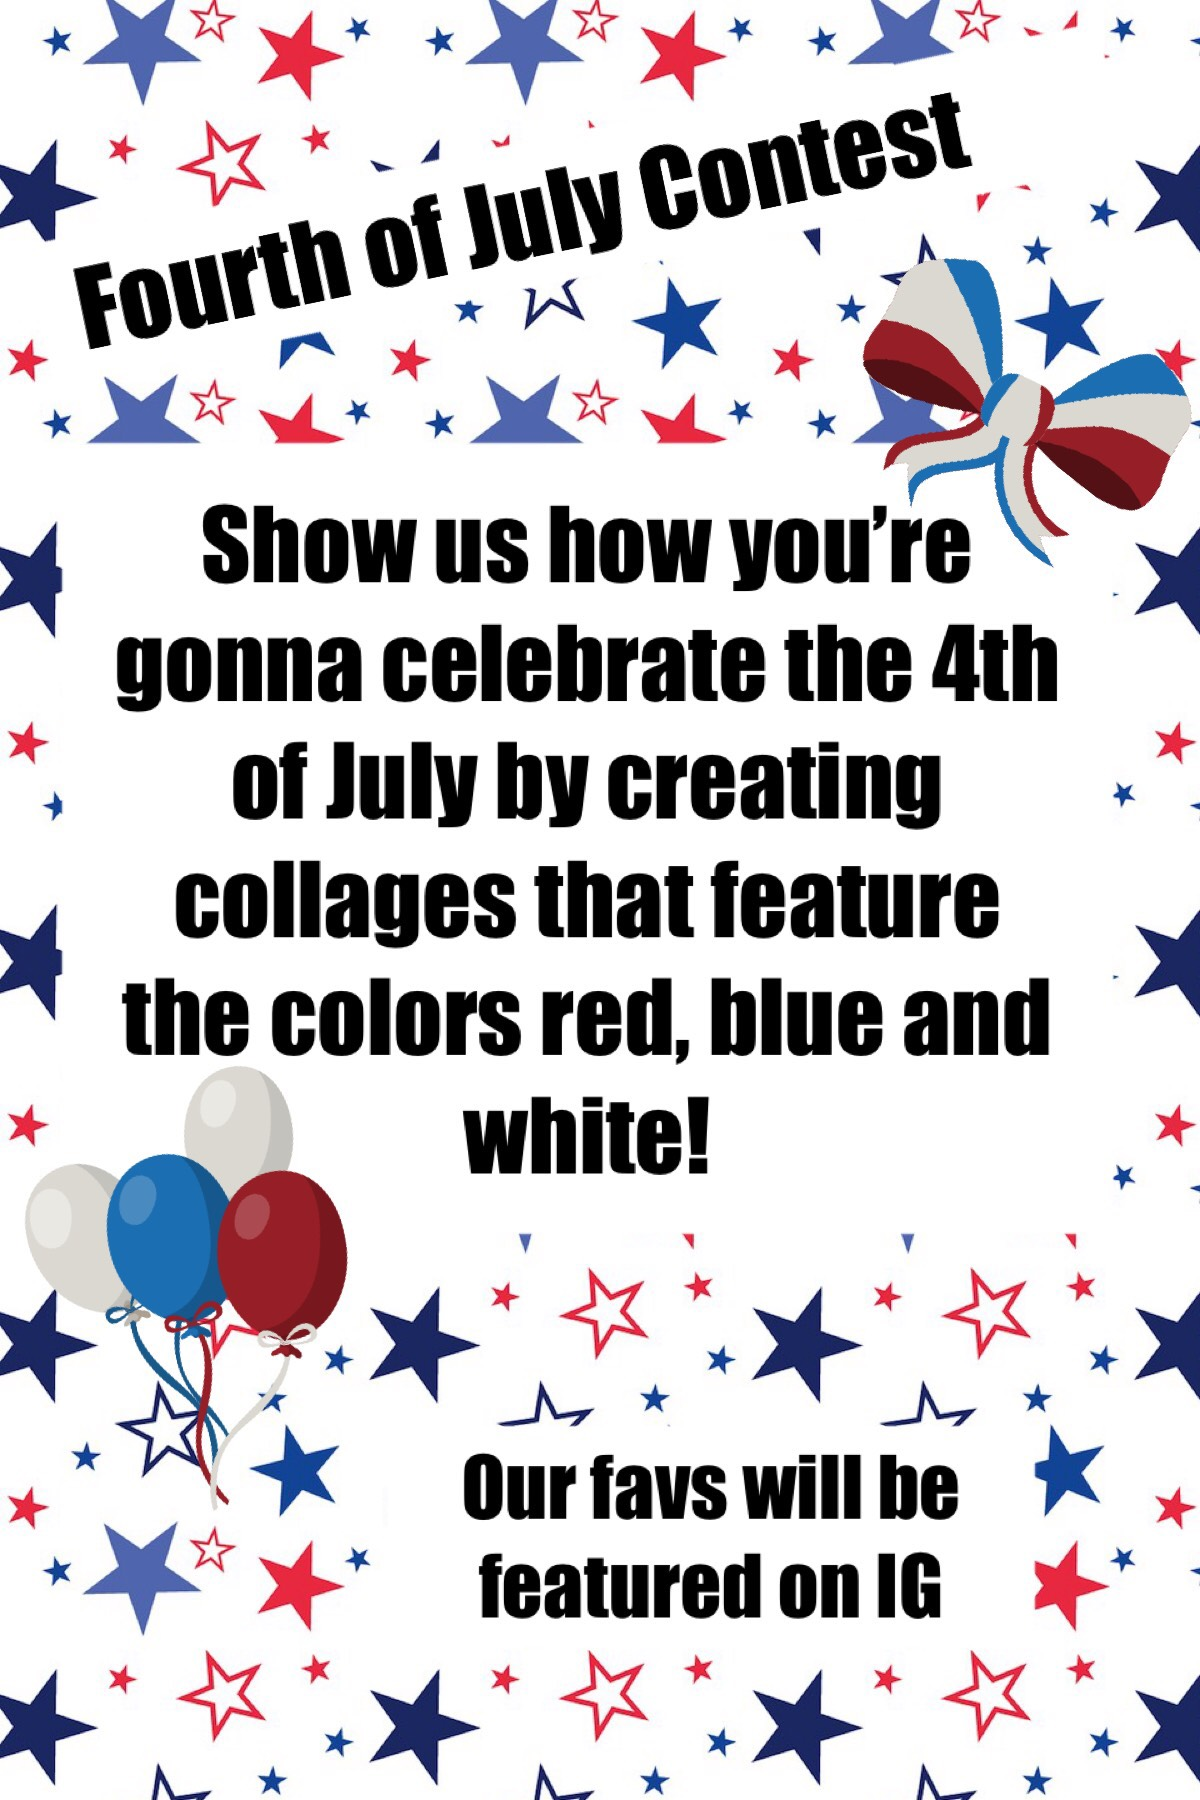 Fourth of July Contest is here!